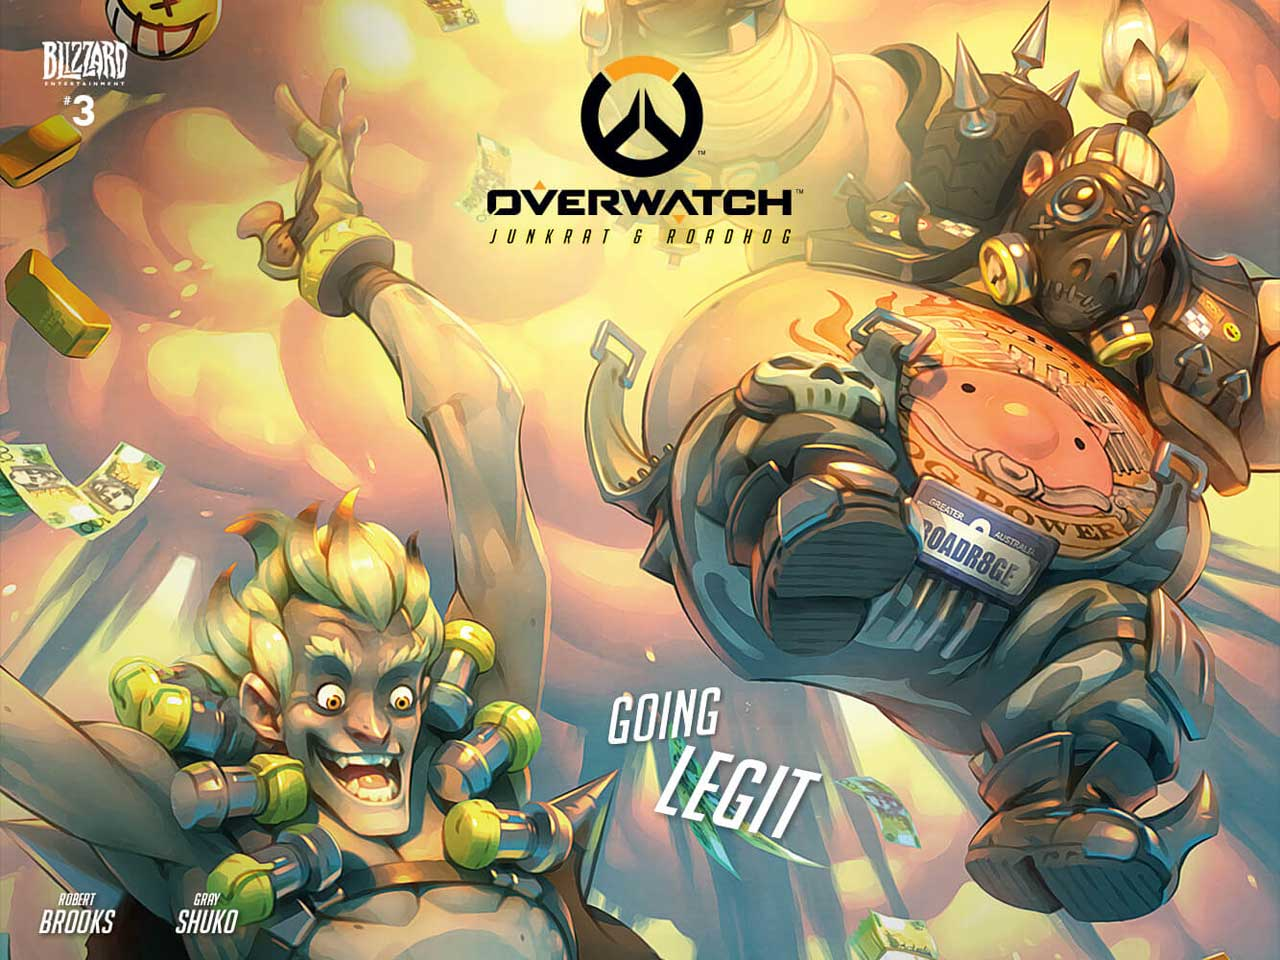 Overwatch Characters Junkrat And Roadhog Star In Latest Comic Issue VG247